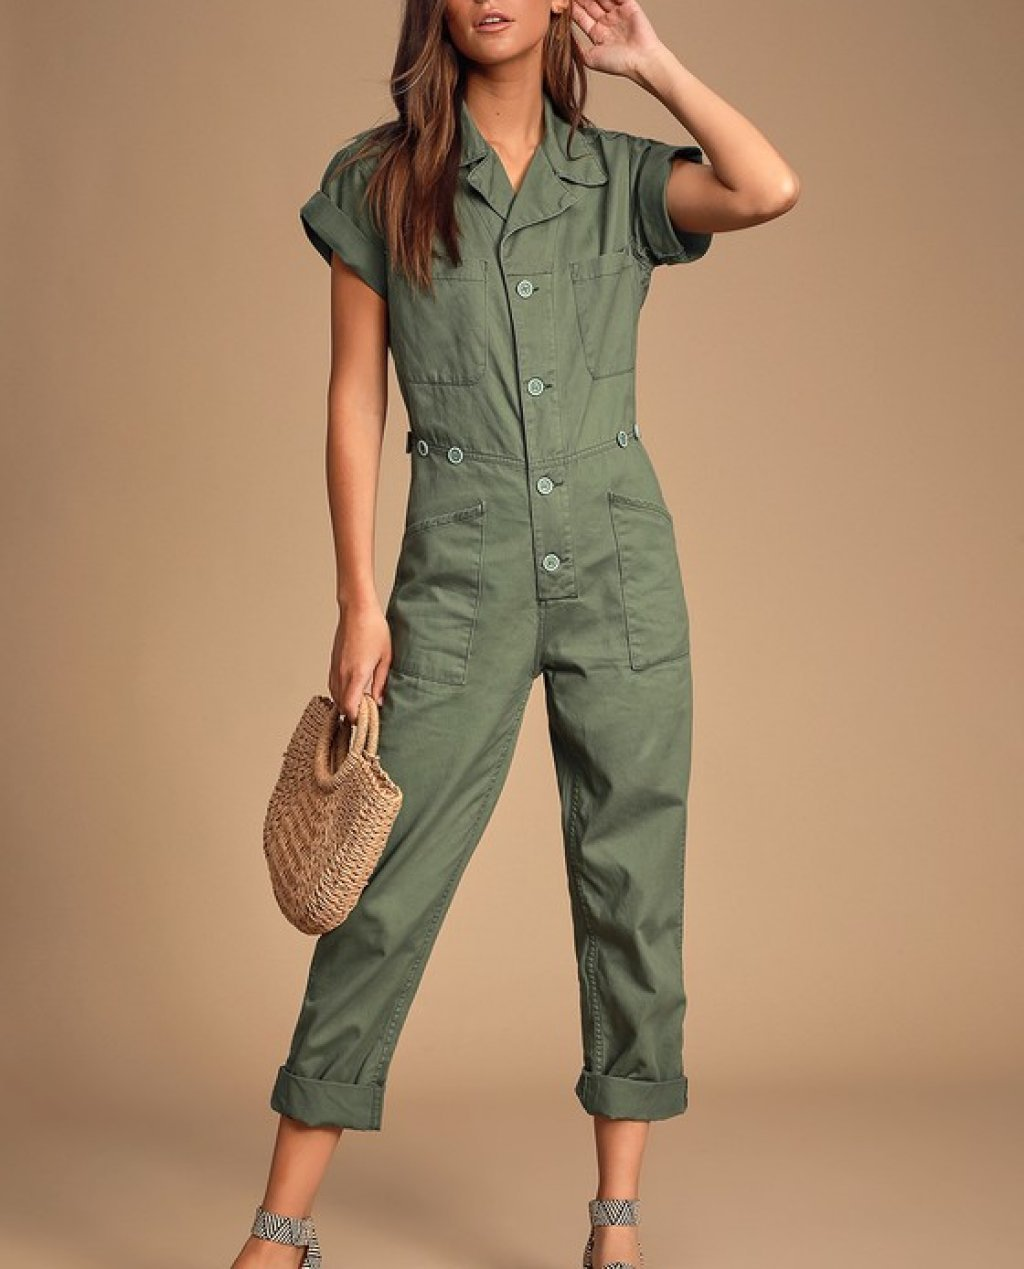 Grover Olive Green Short Sleeve Denim Jumpsuit